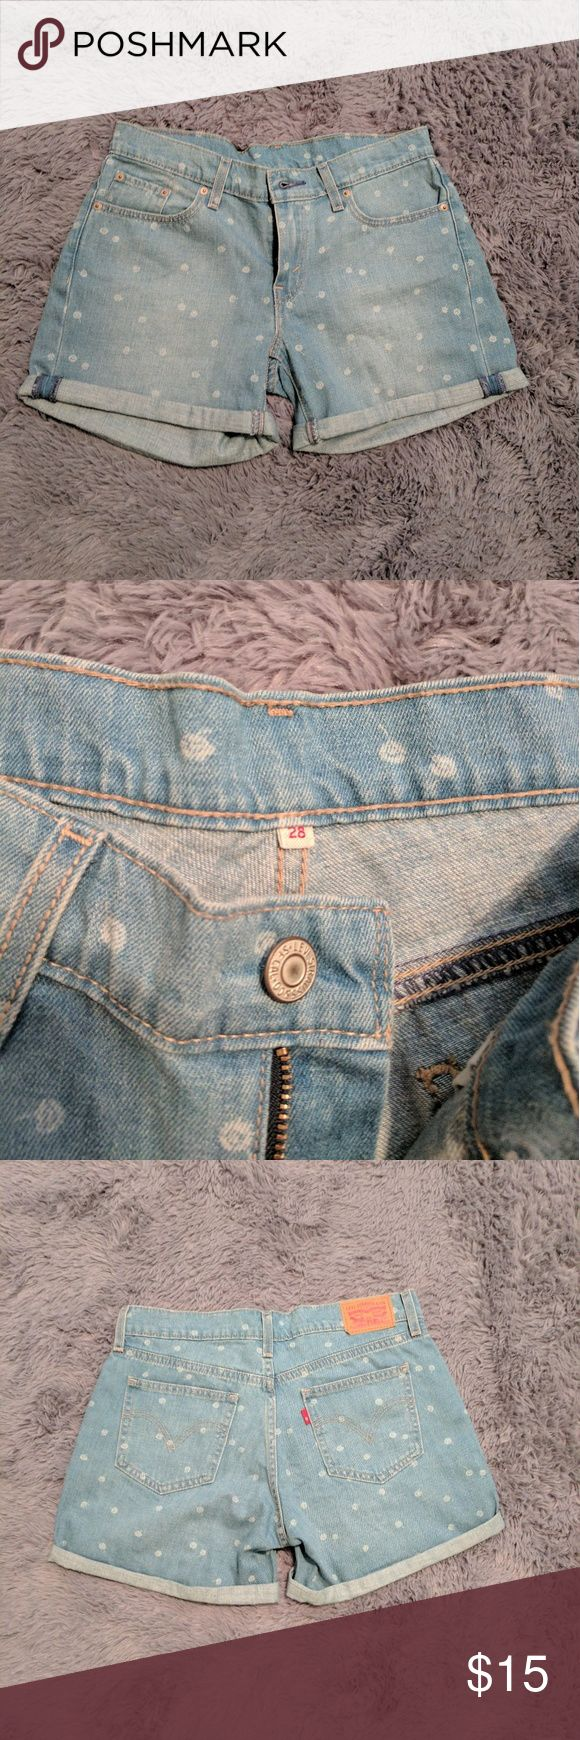 Levi Strauss Women's Shorts 28 Levi Strauss Women's Shorts 28 Cute Polka Dot Shorts, like new My mom gave them to me, they were too small for her and a little big for me Fits like a Medium Levi's Shorts Jean Shorts